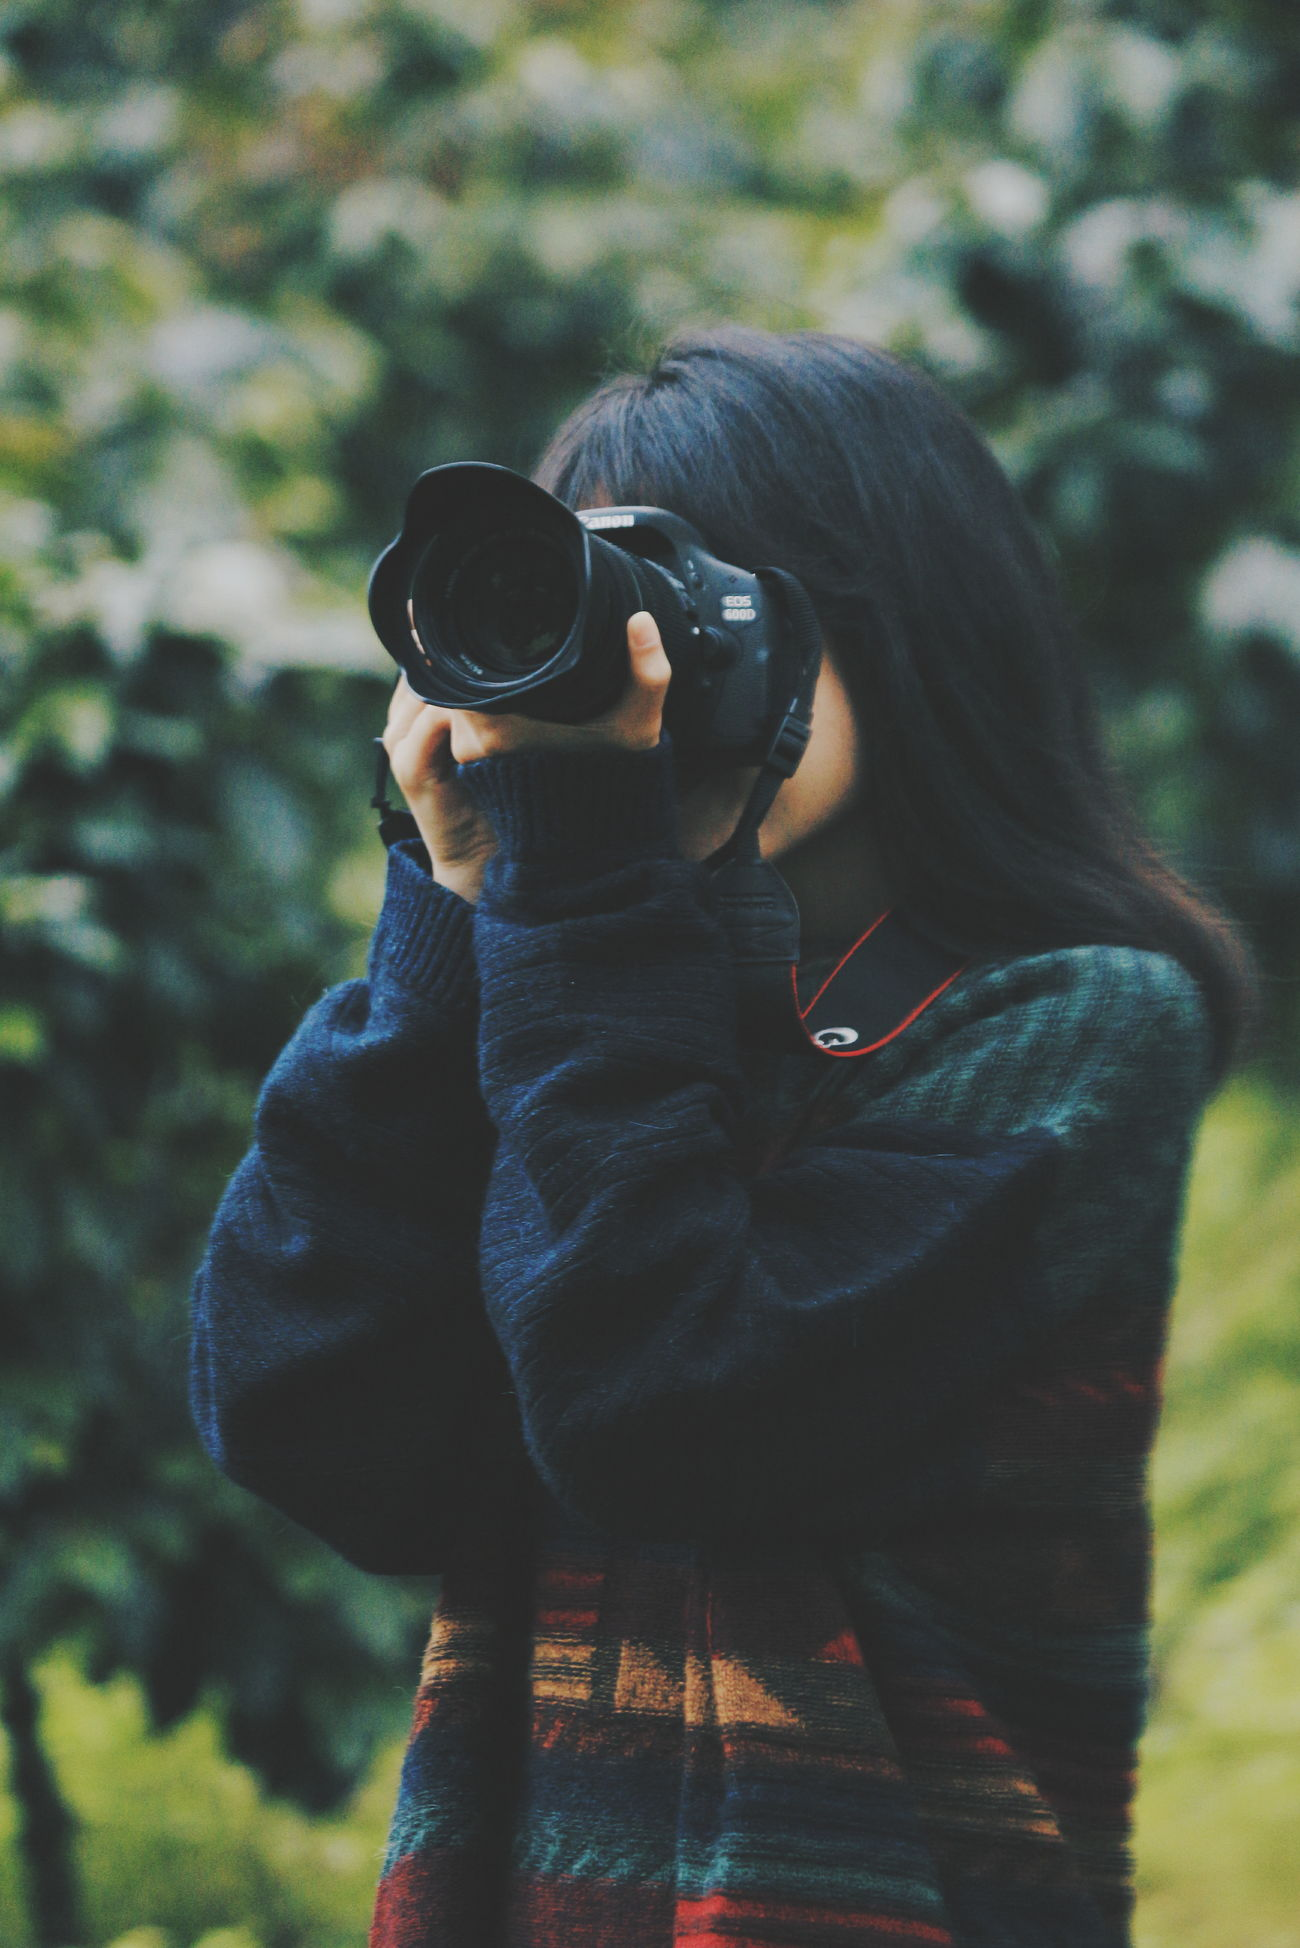 Adults Only One Person One Woman Only Women Adult People Only Women Real People Outdoors Day Warm Clothing Young Adult Human Body Part Indonesia_photography EyeEm Indonesia Close Up Technology Technology Close-up Camera - Photographic Equipment Tree